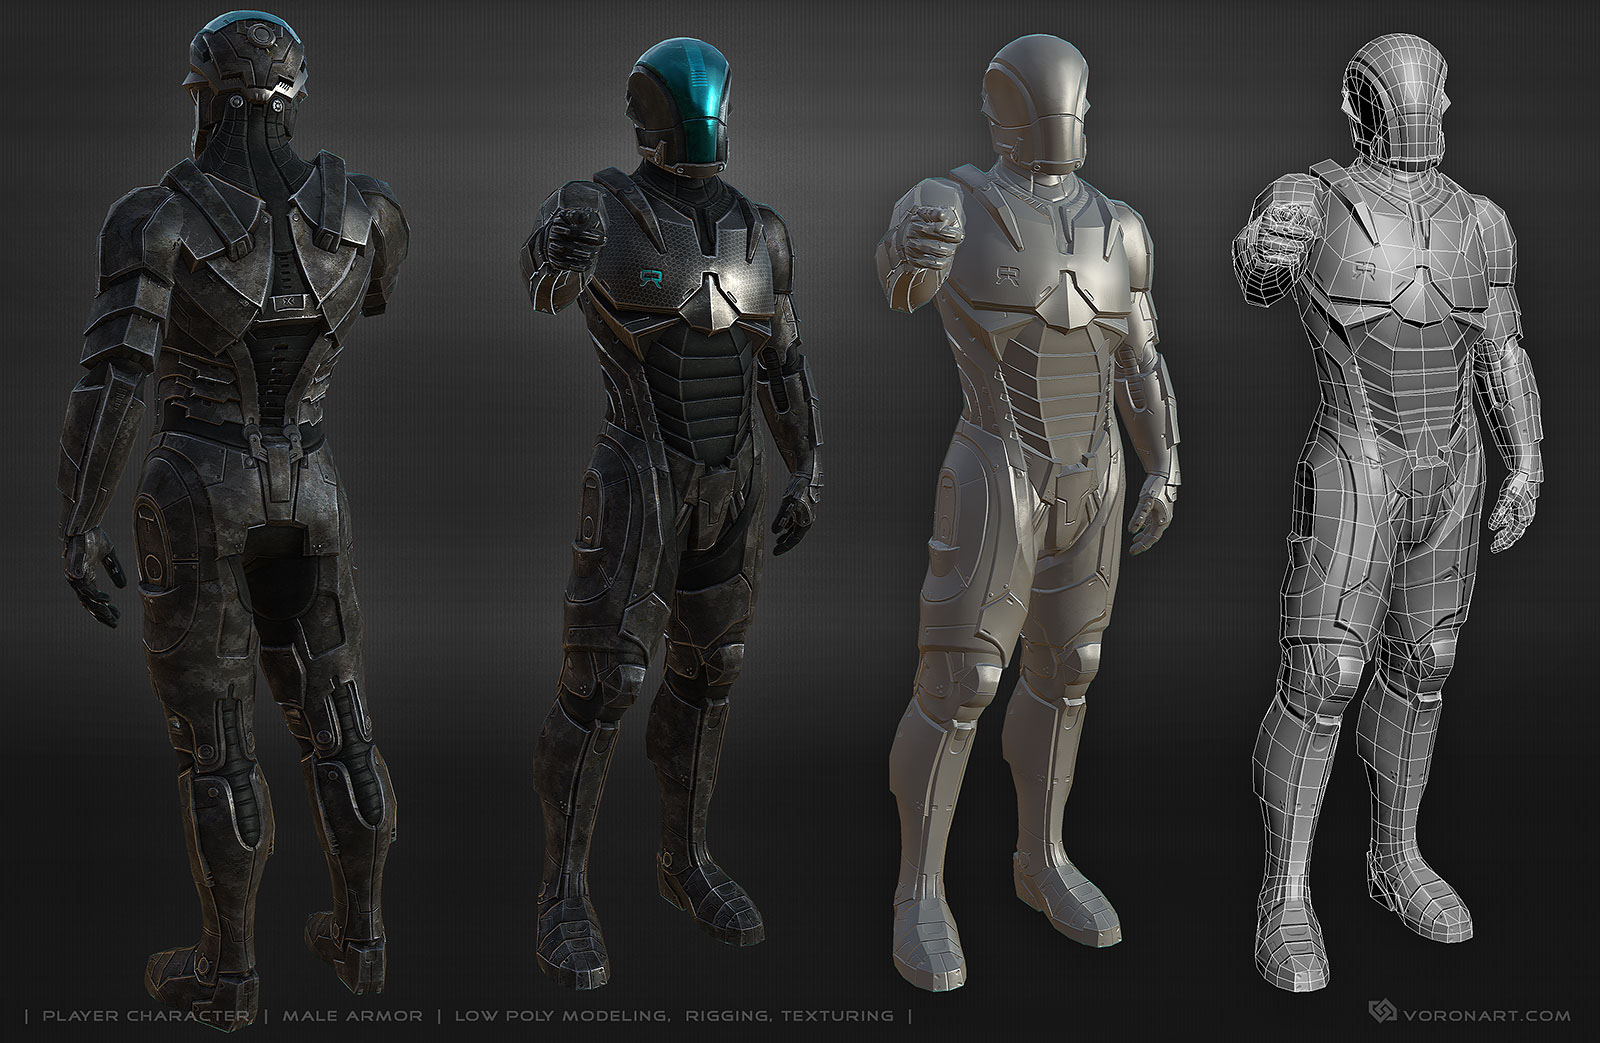 Power armor suit  3d character on Behance